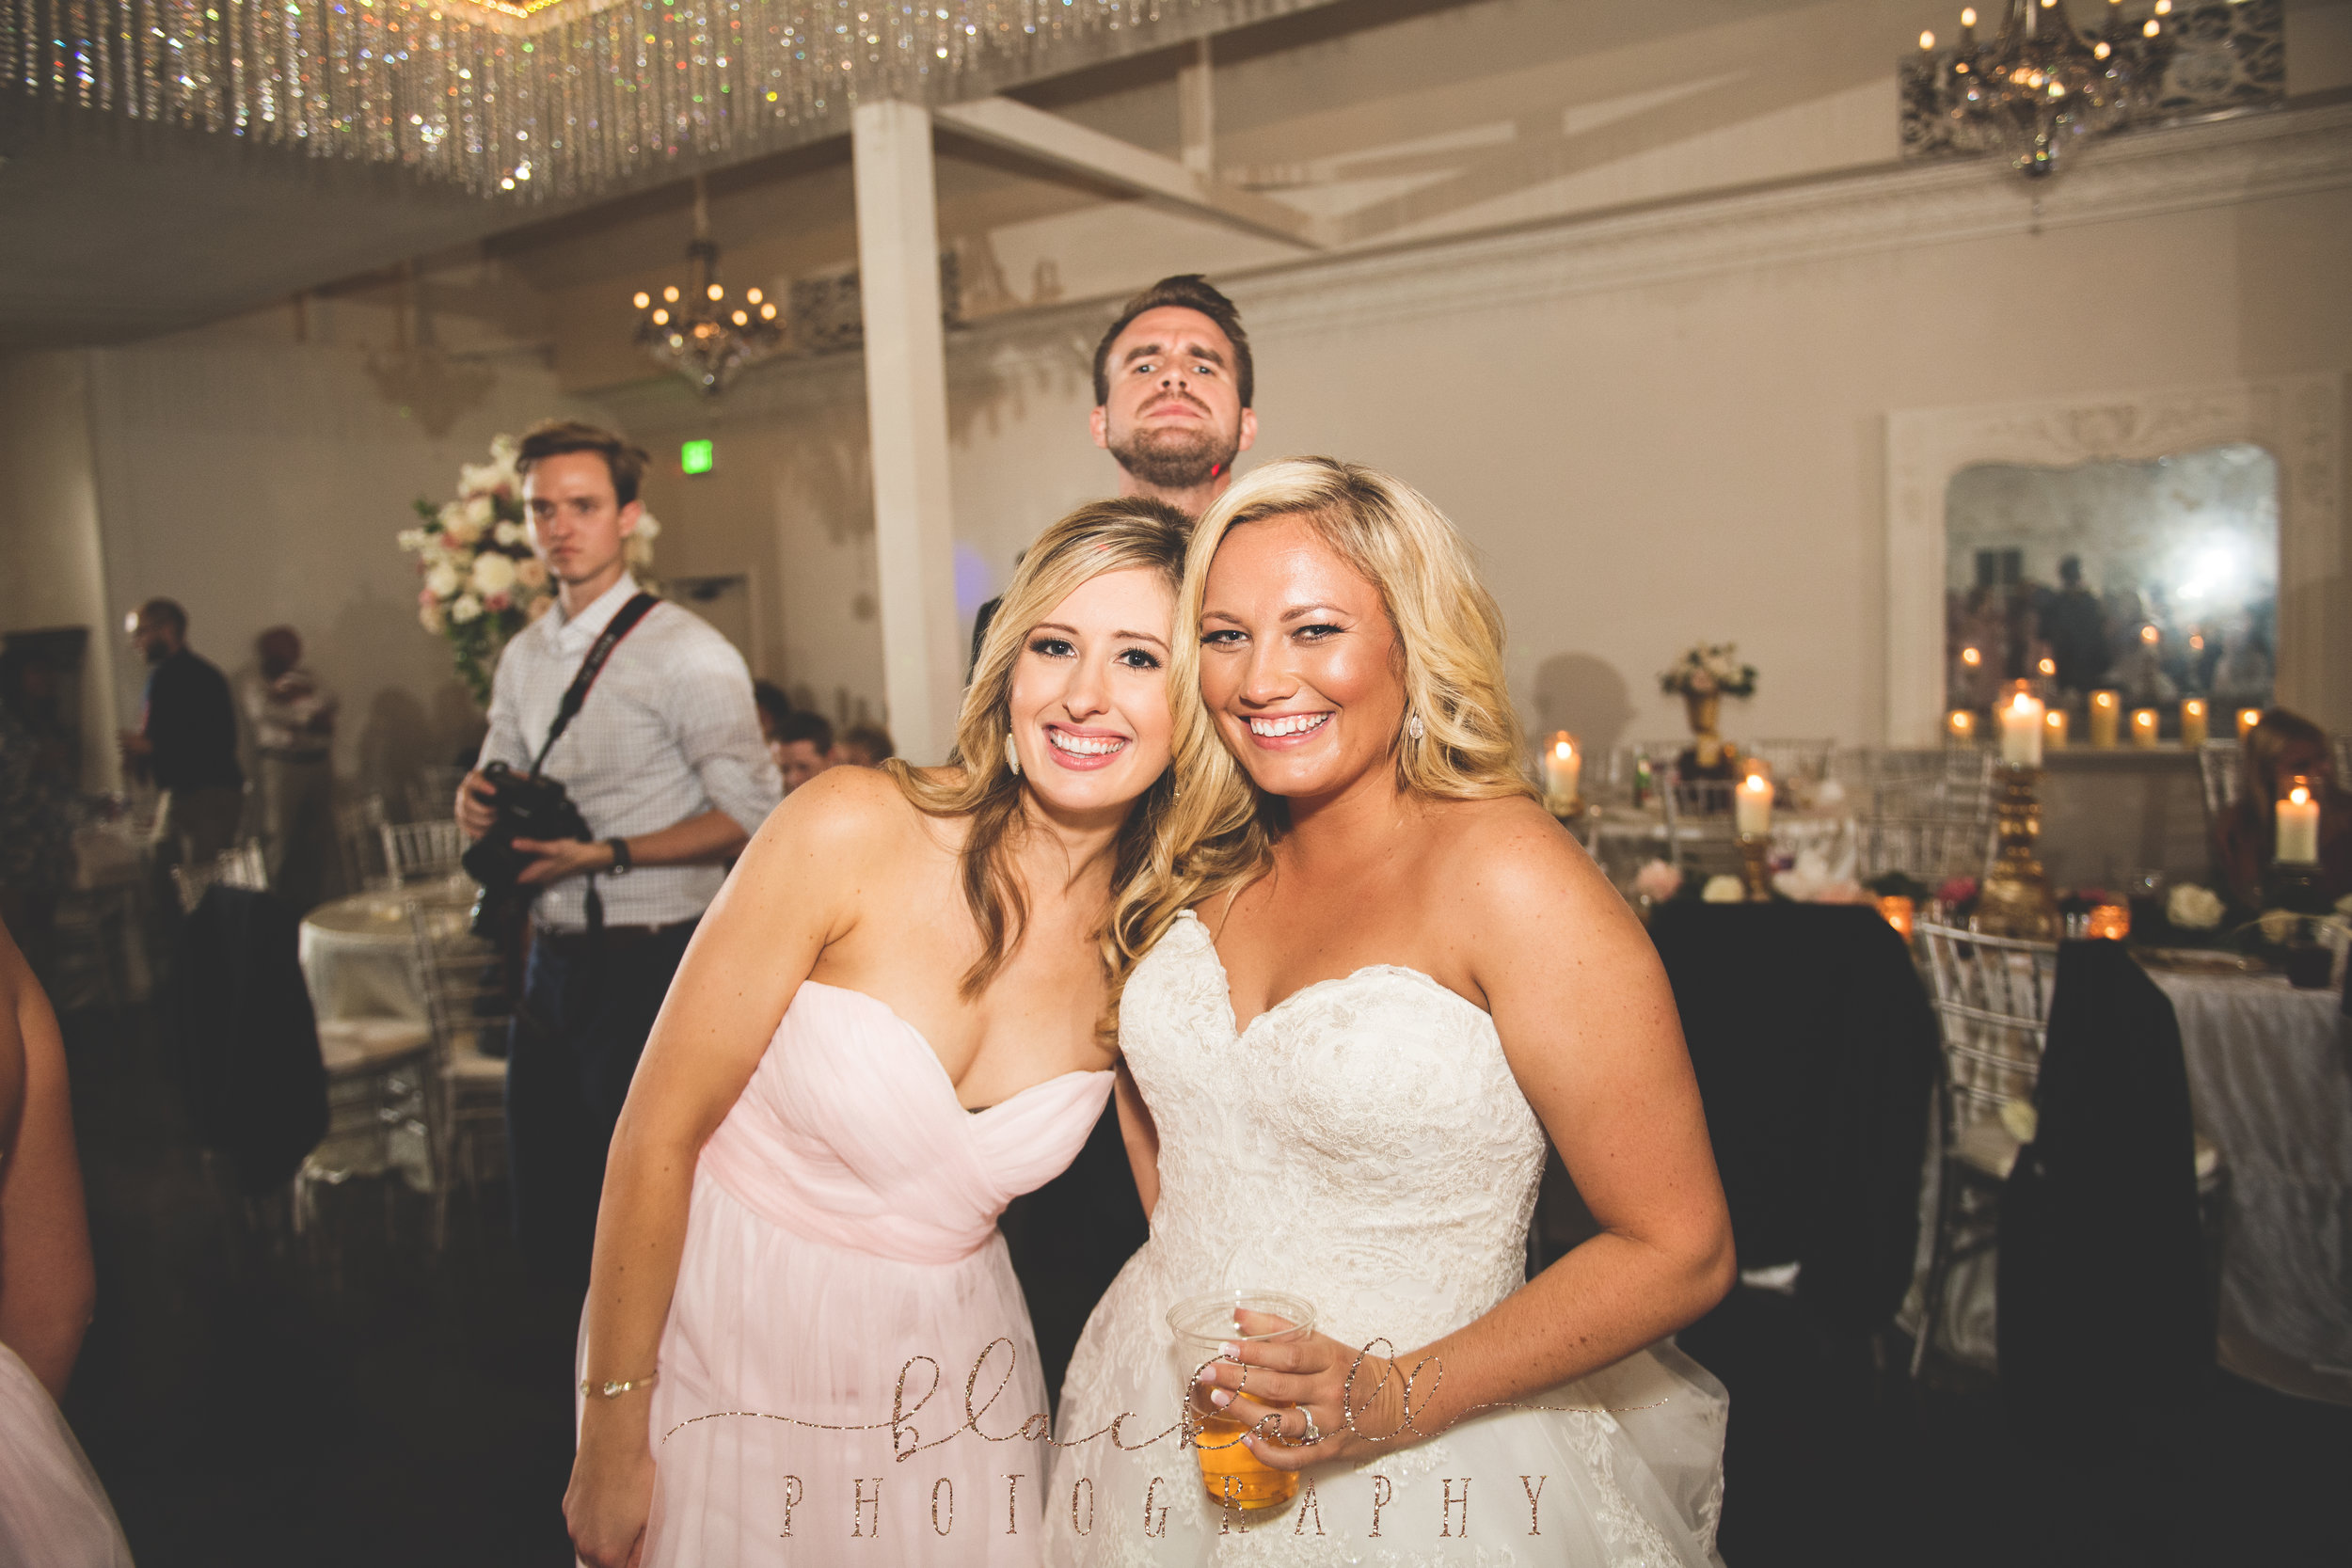 WEDDING_BlackallPhotography_56.JPG